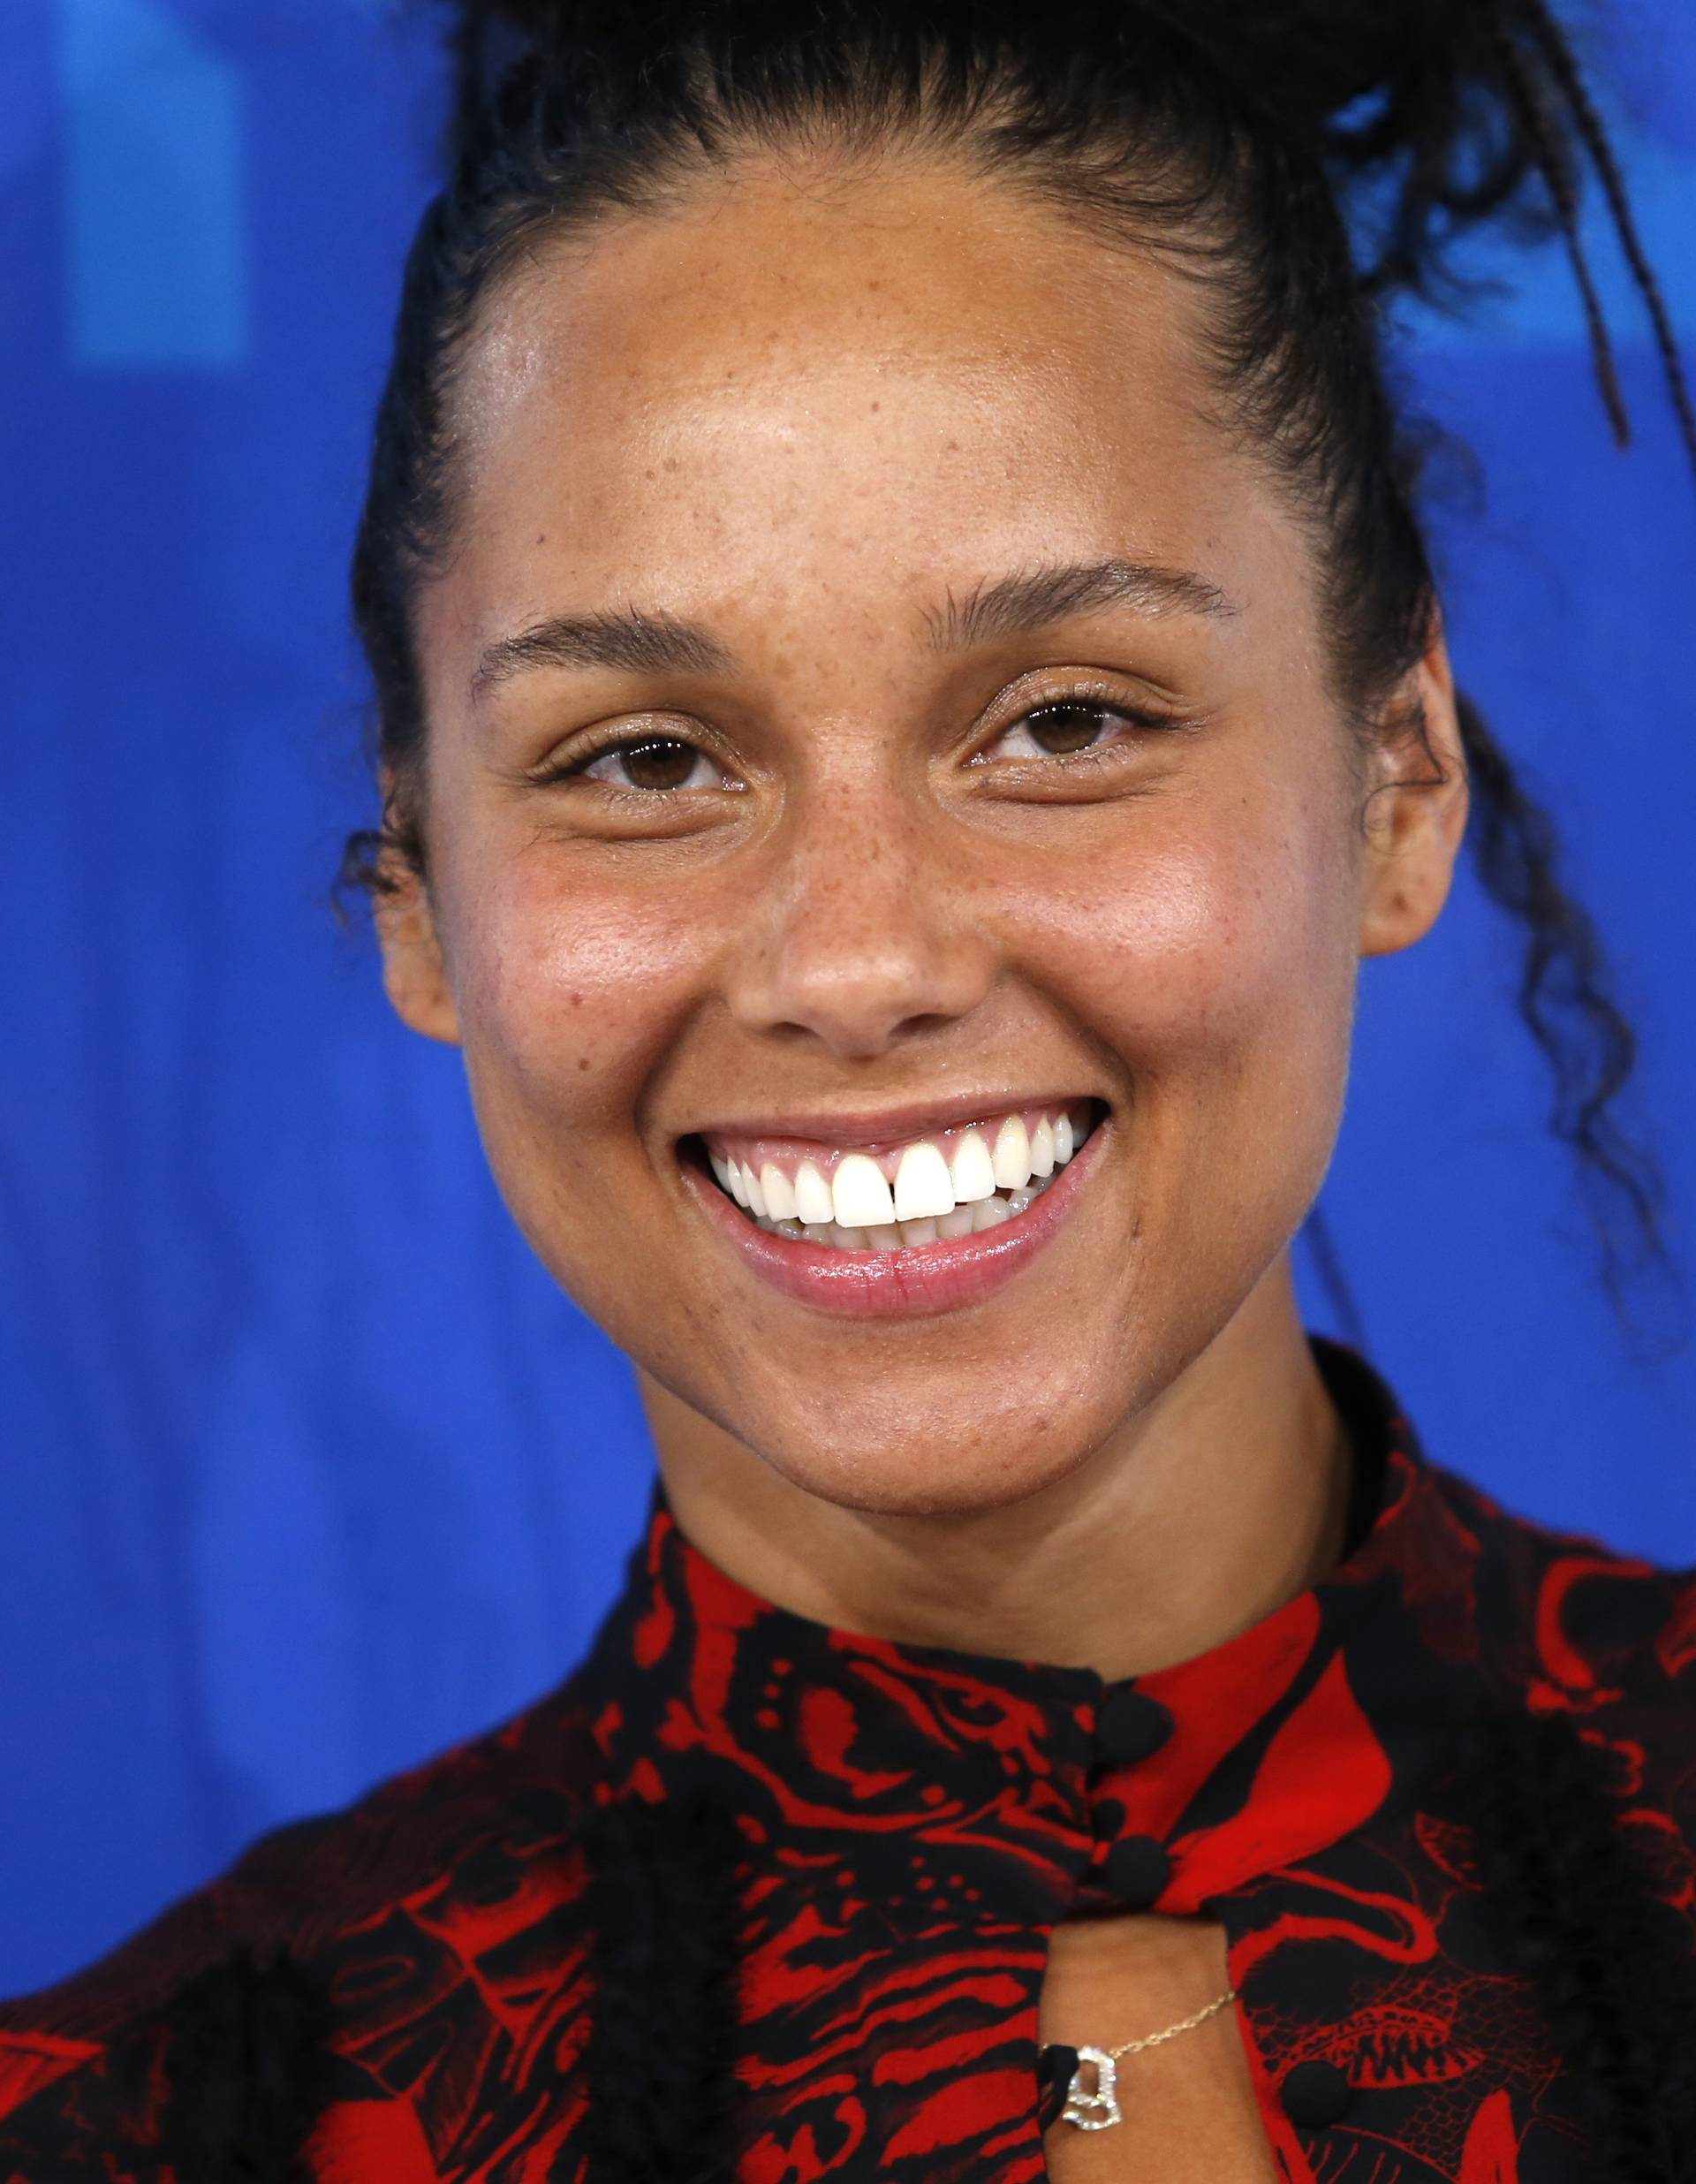 Musician Alicia Keys arrives at the 2016 MTV Video Music Awards in New York